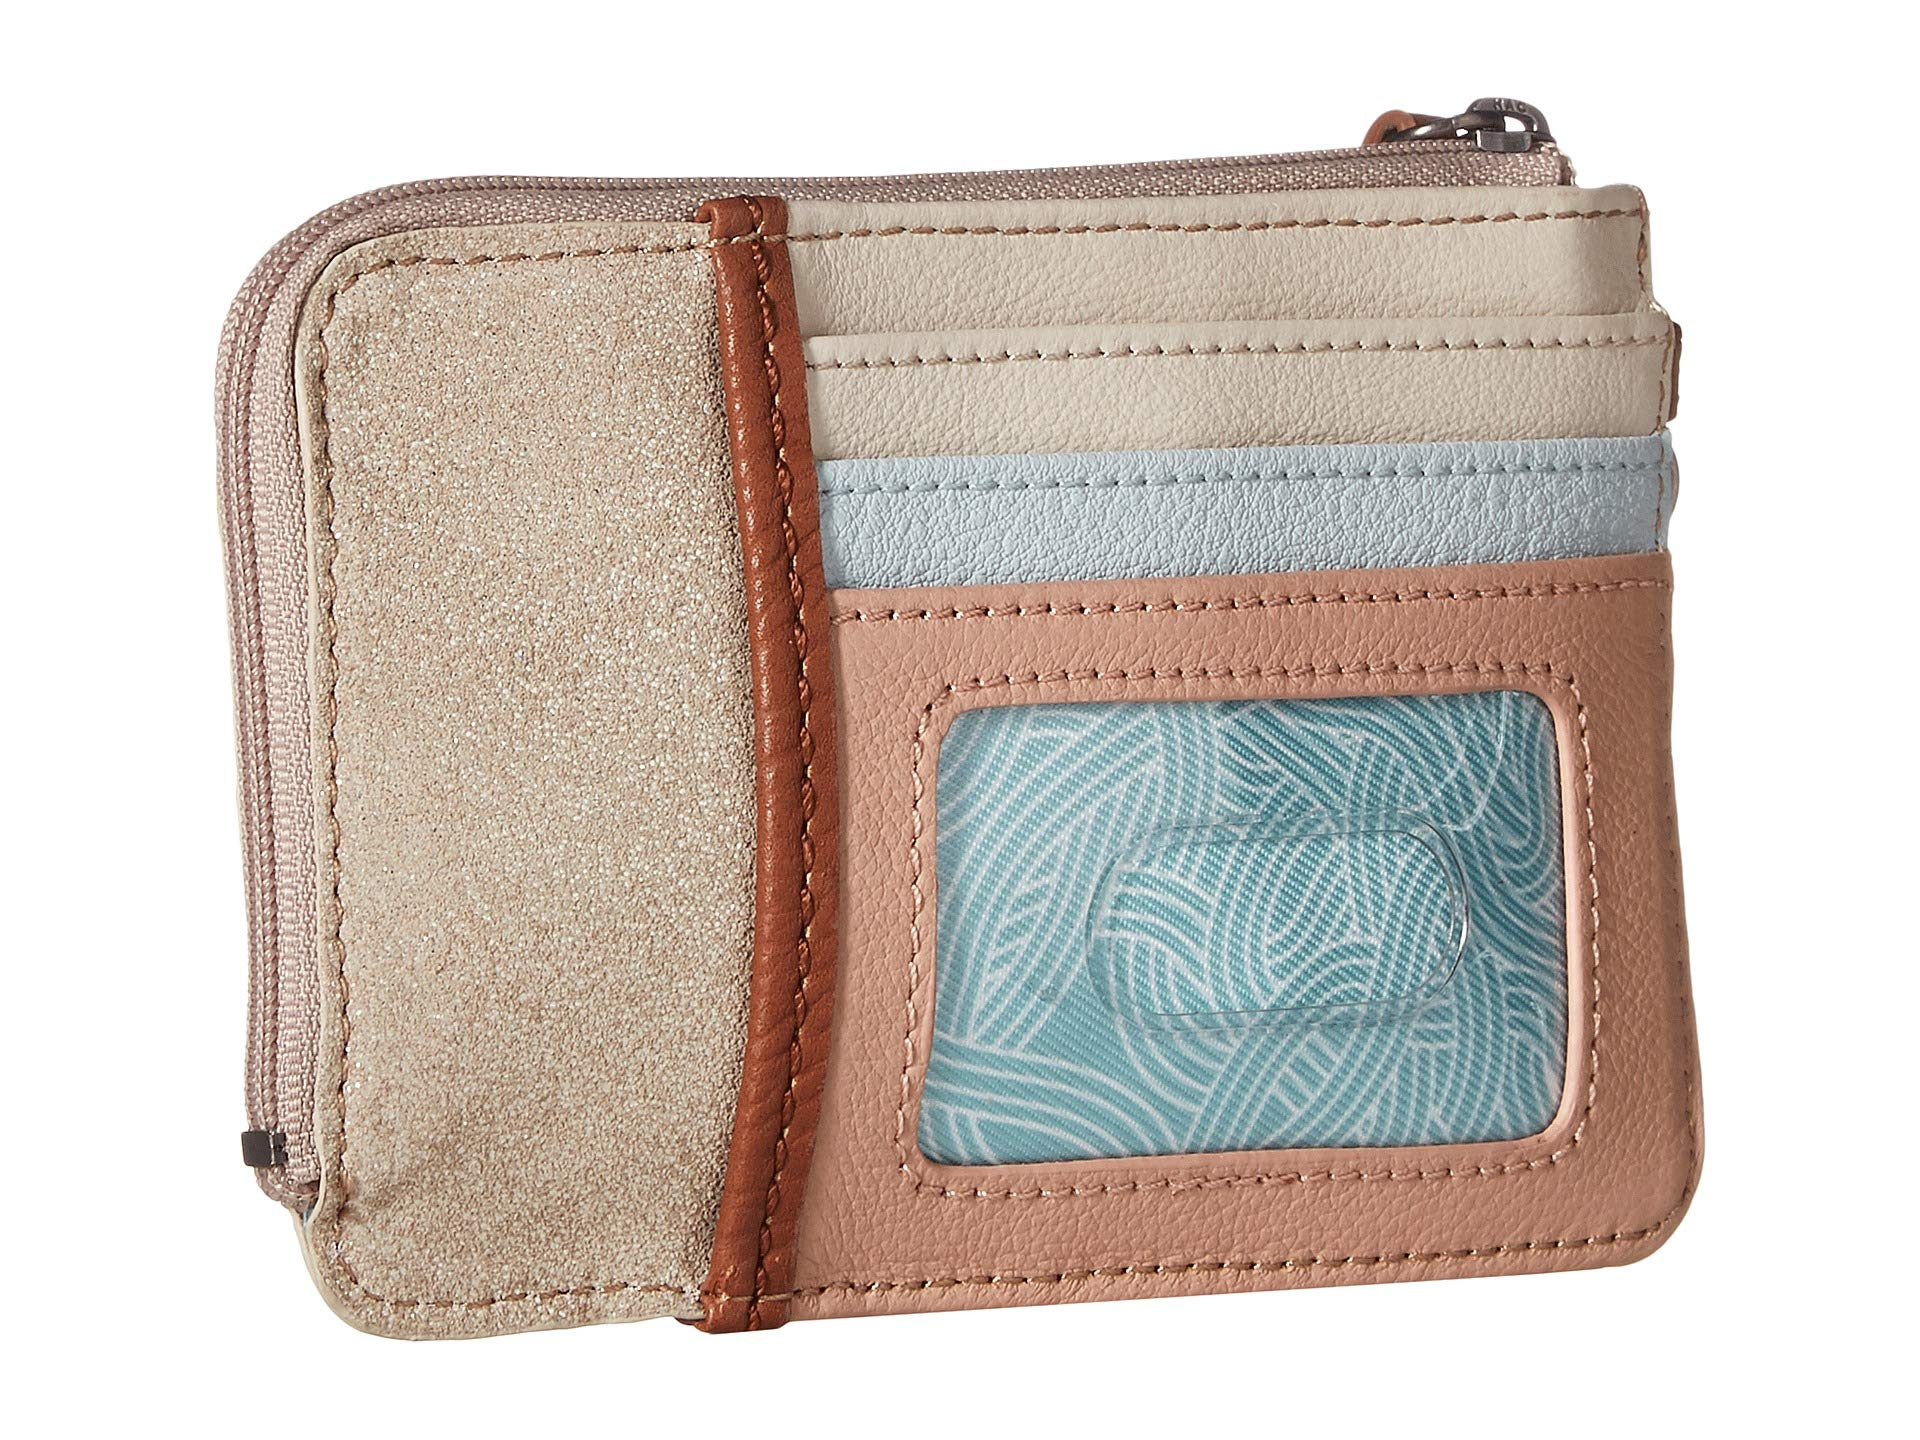 Wallet Montecito The Iris Sak Card Multi Snwfnpt8xq